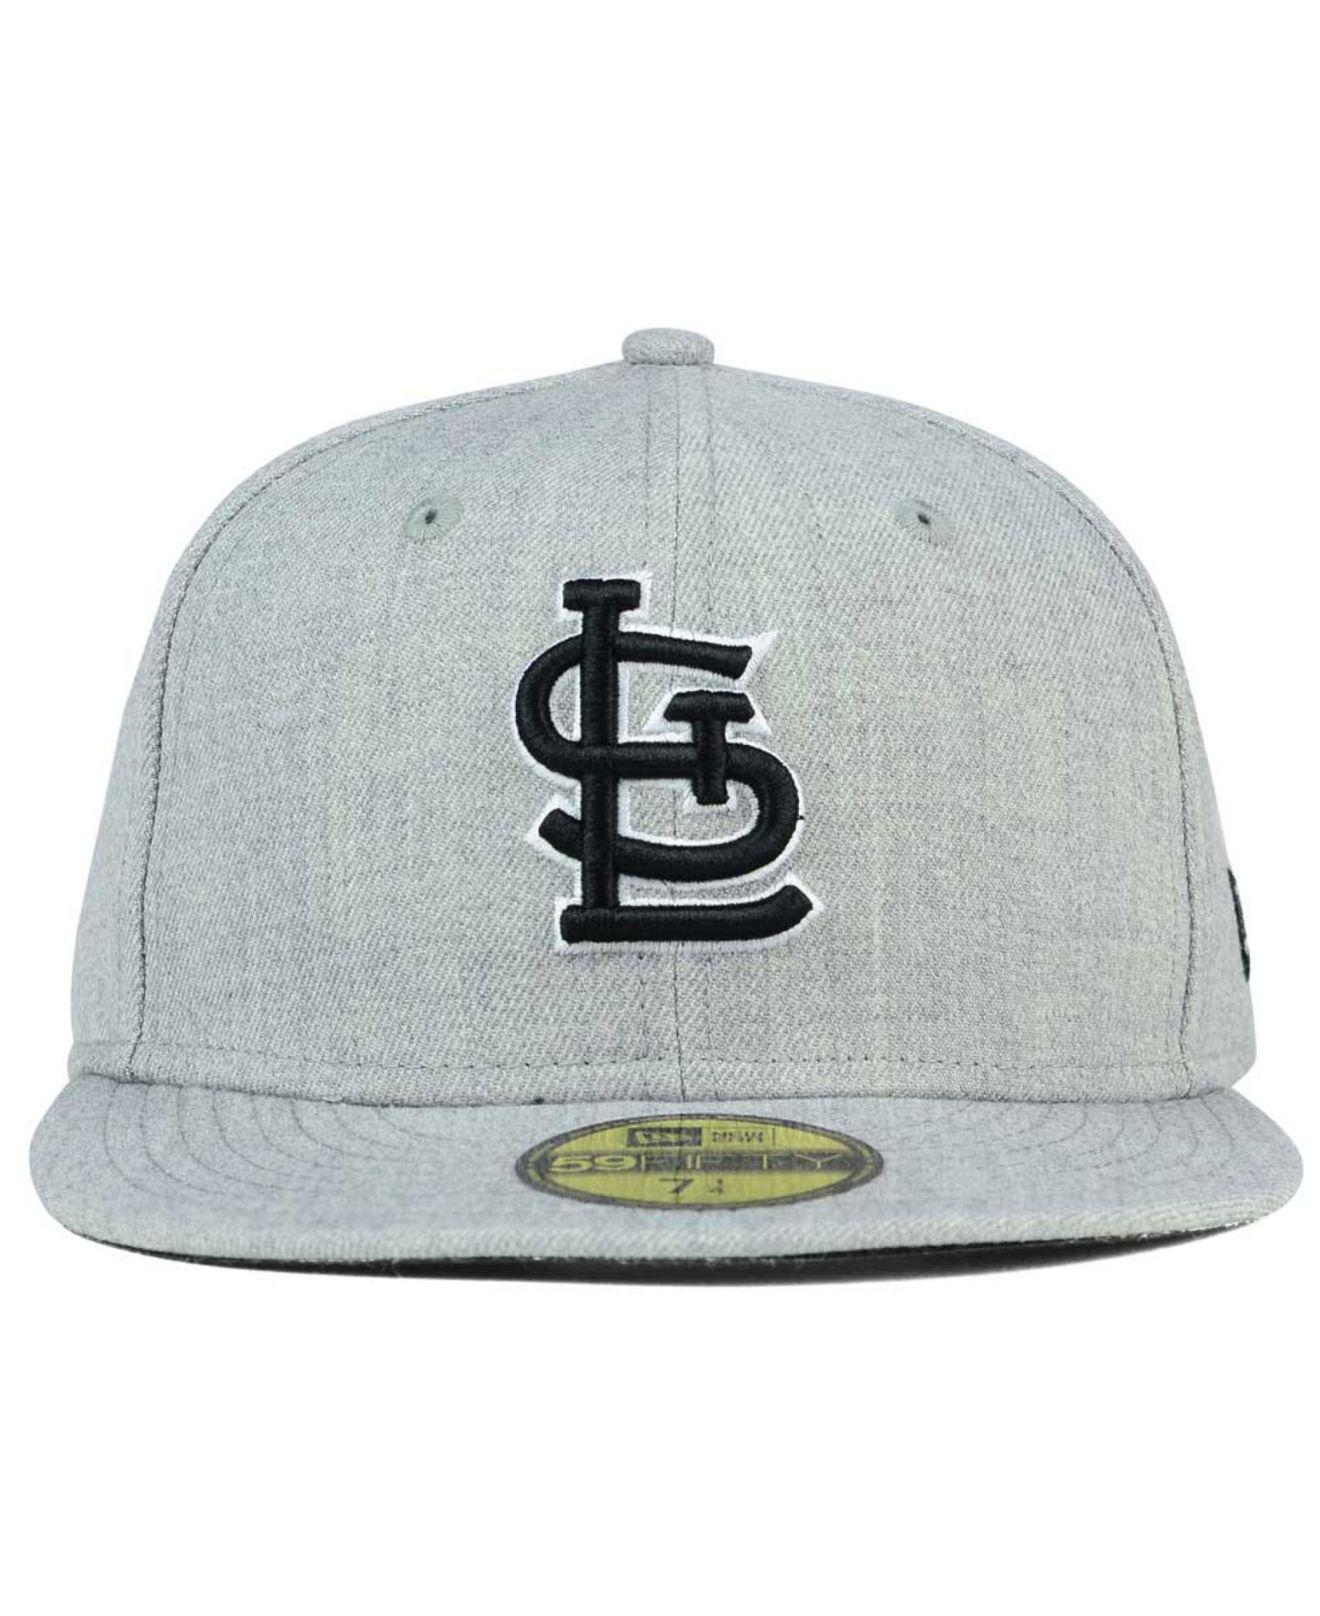 separation shoes 3b0d8 a1650 Lyst - KTZ St. Louis Cardinals Heather Black White 59fifty Cap in Gray for  Men